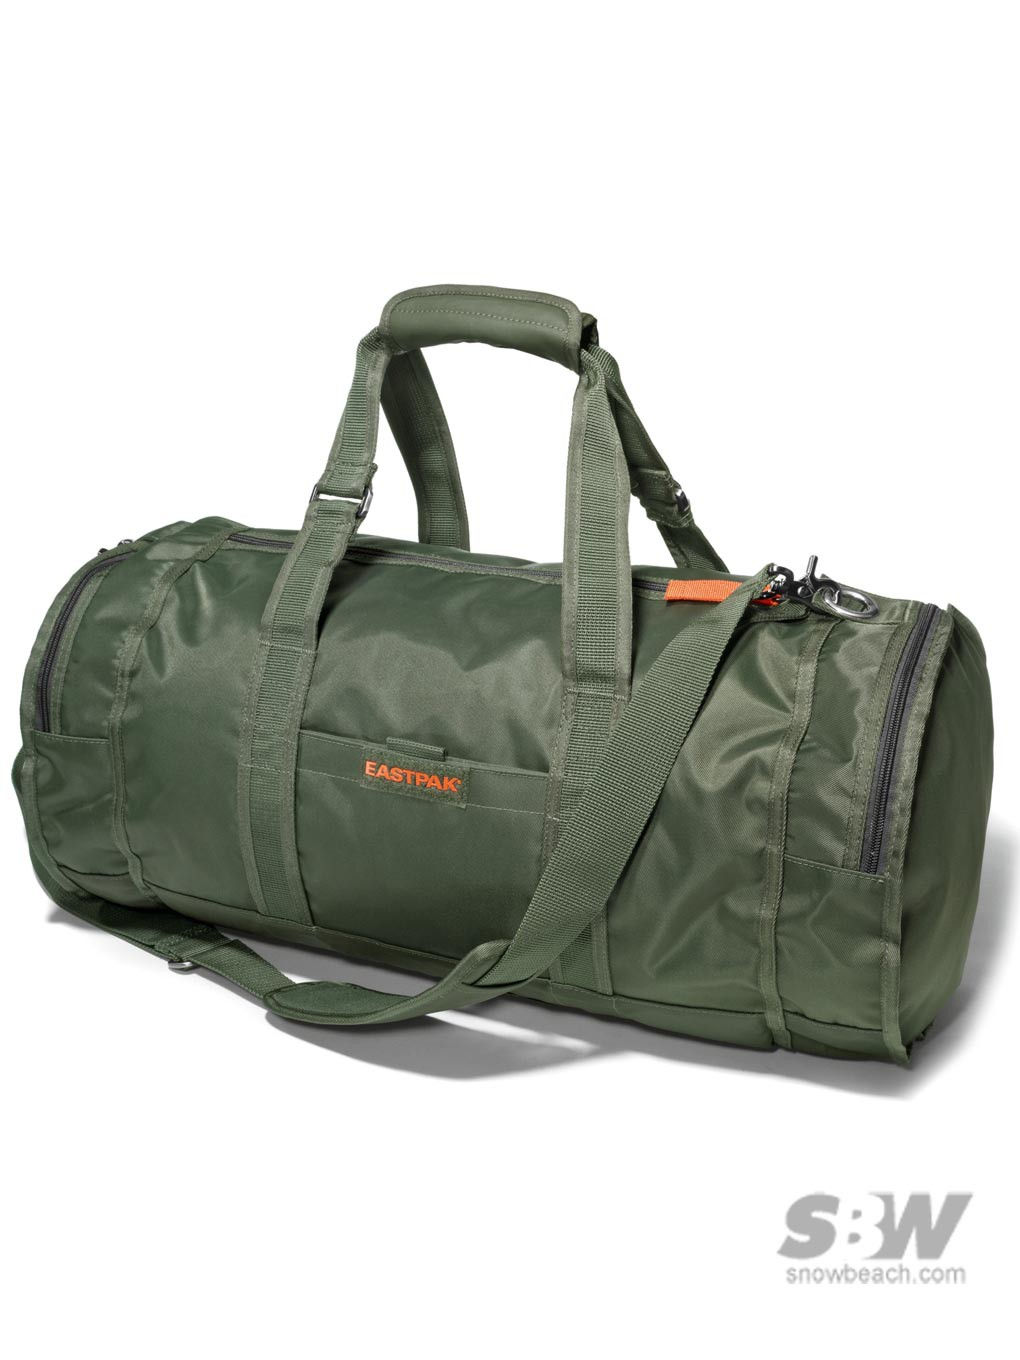 Eastpak Duffel Bag Eastpak Classified Bag Classified Green Duffel Green Eastpak PPqarxnd